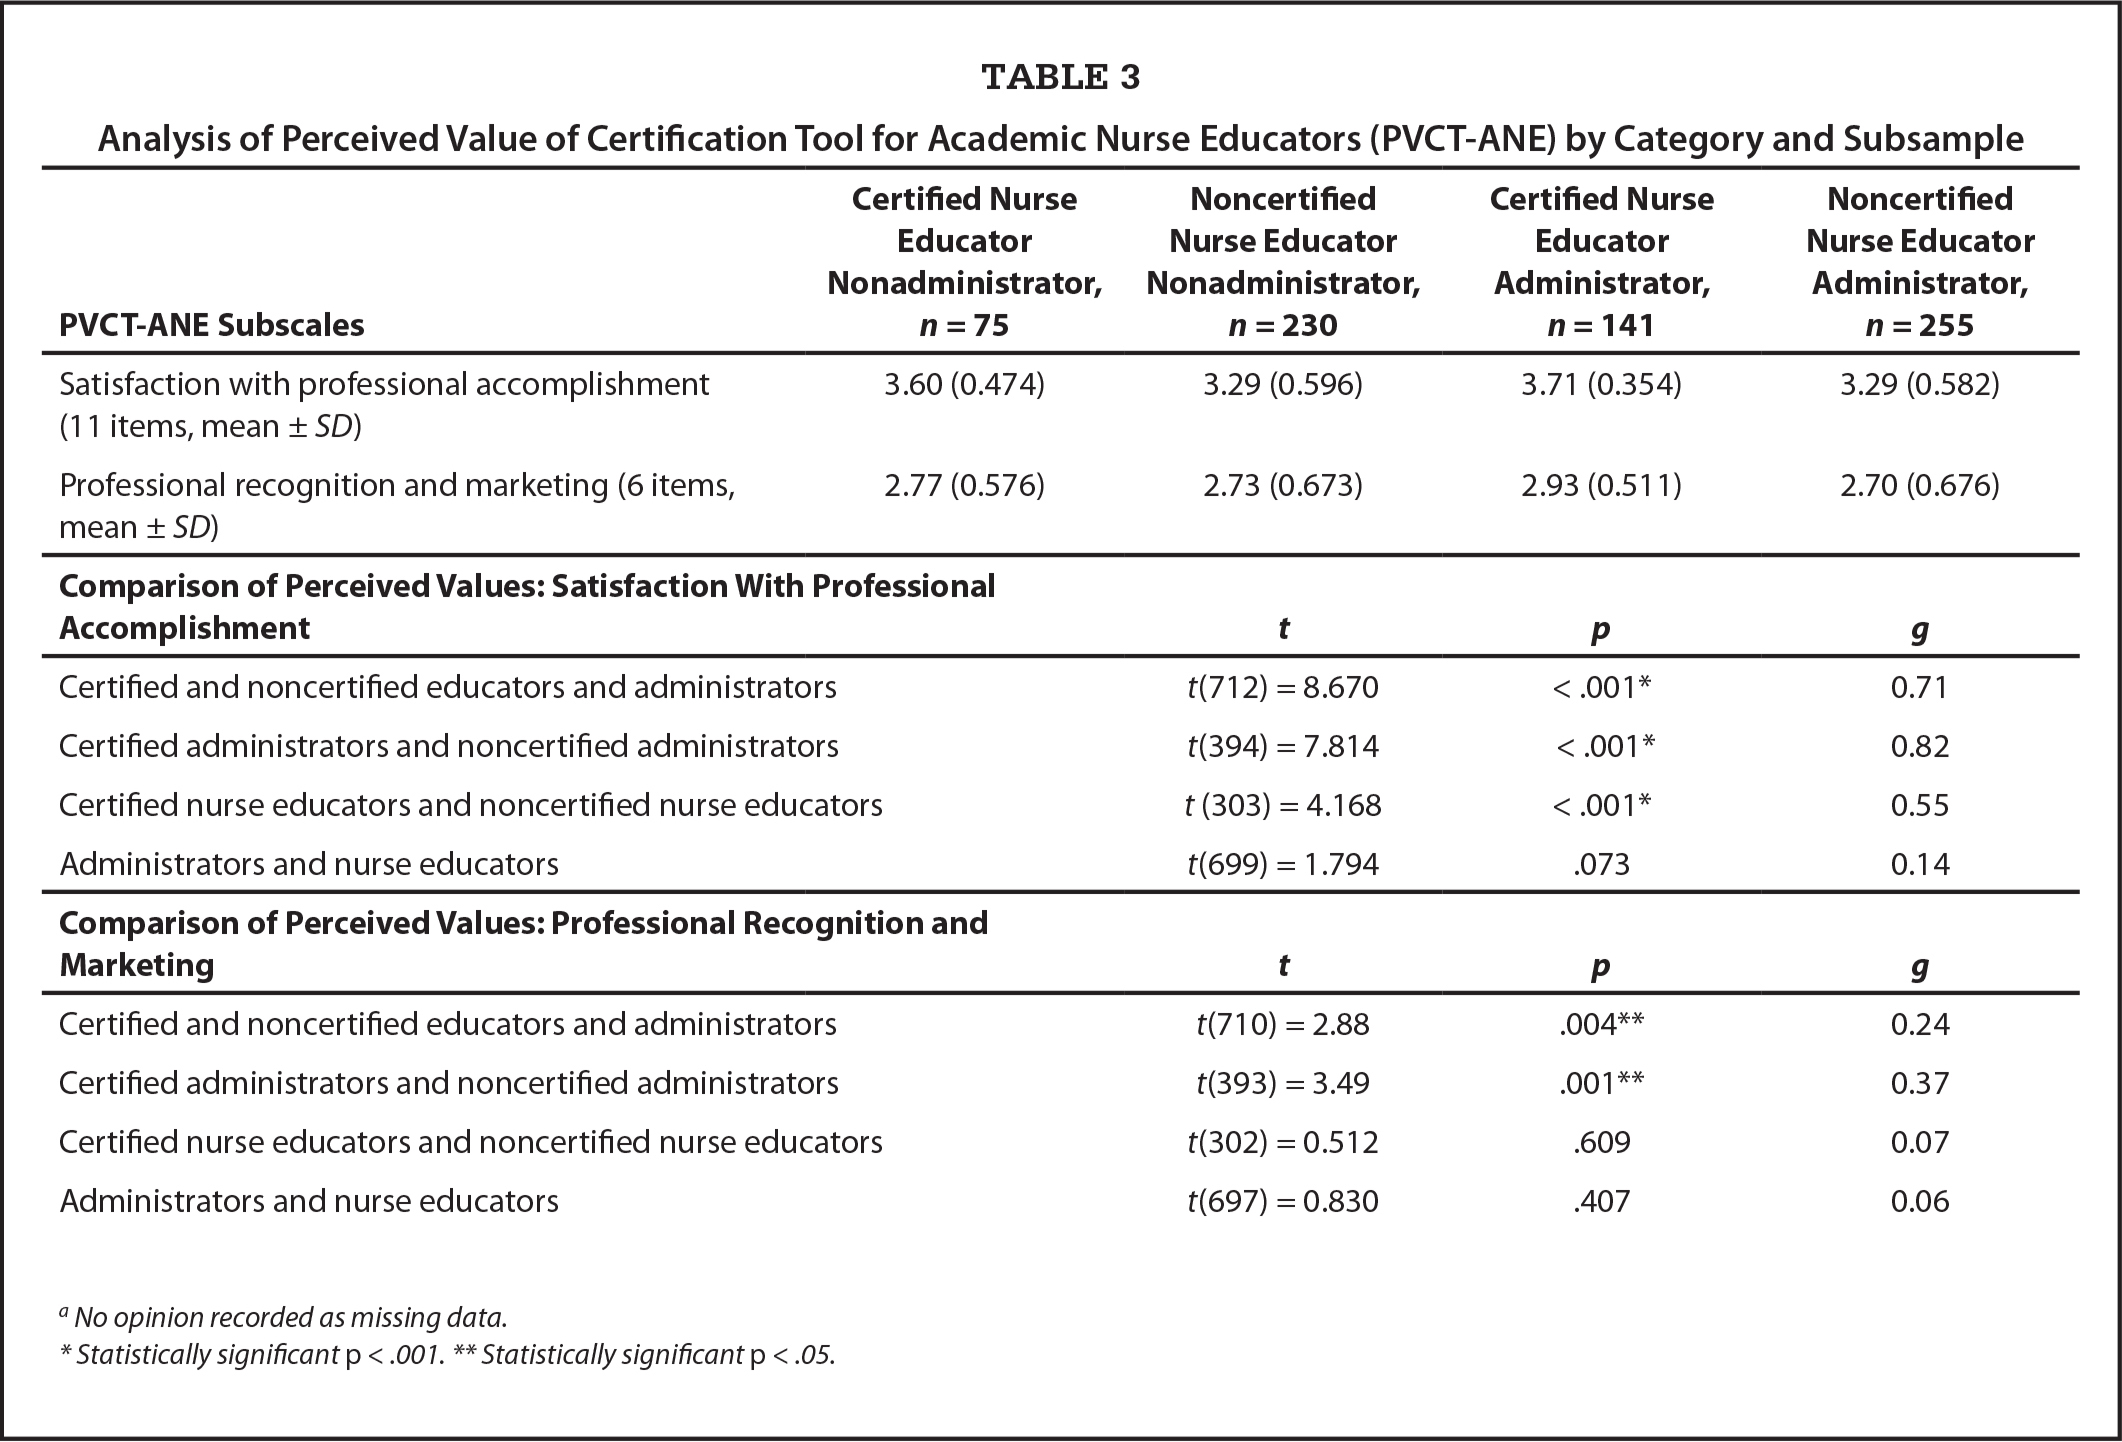 Analysis of Perceived Value of Certification Tool for Academic Nurse Educators (PVCT-ANE) by Category and Subsample